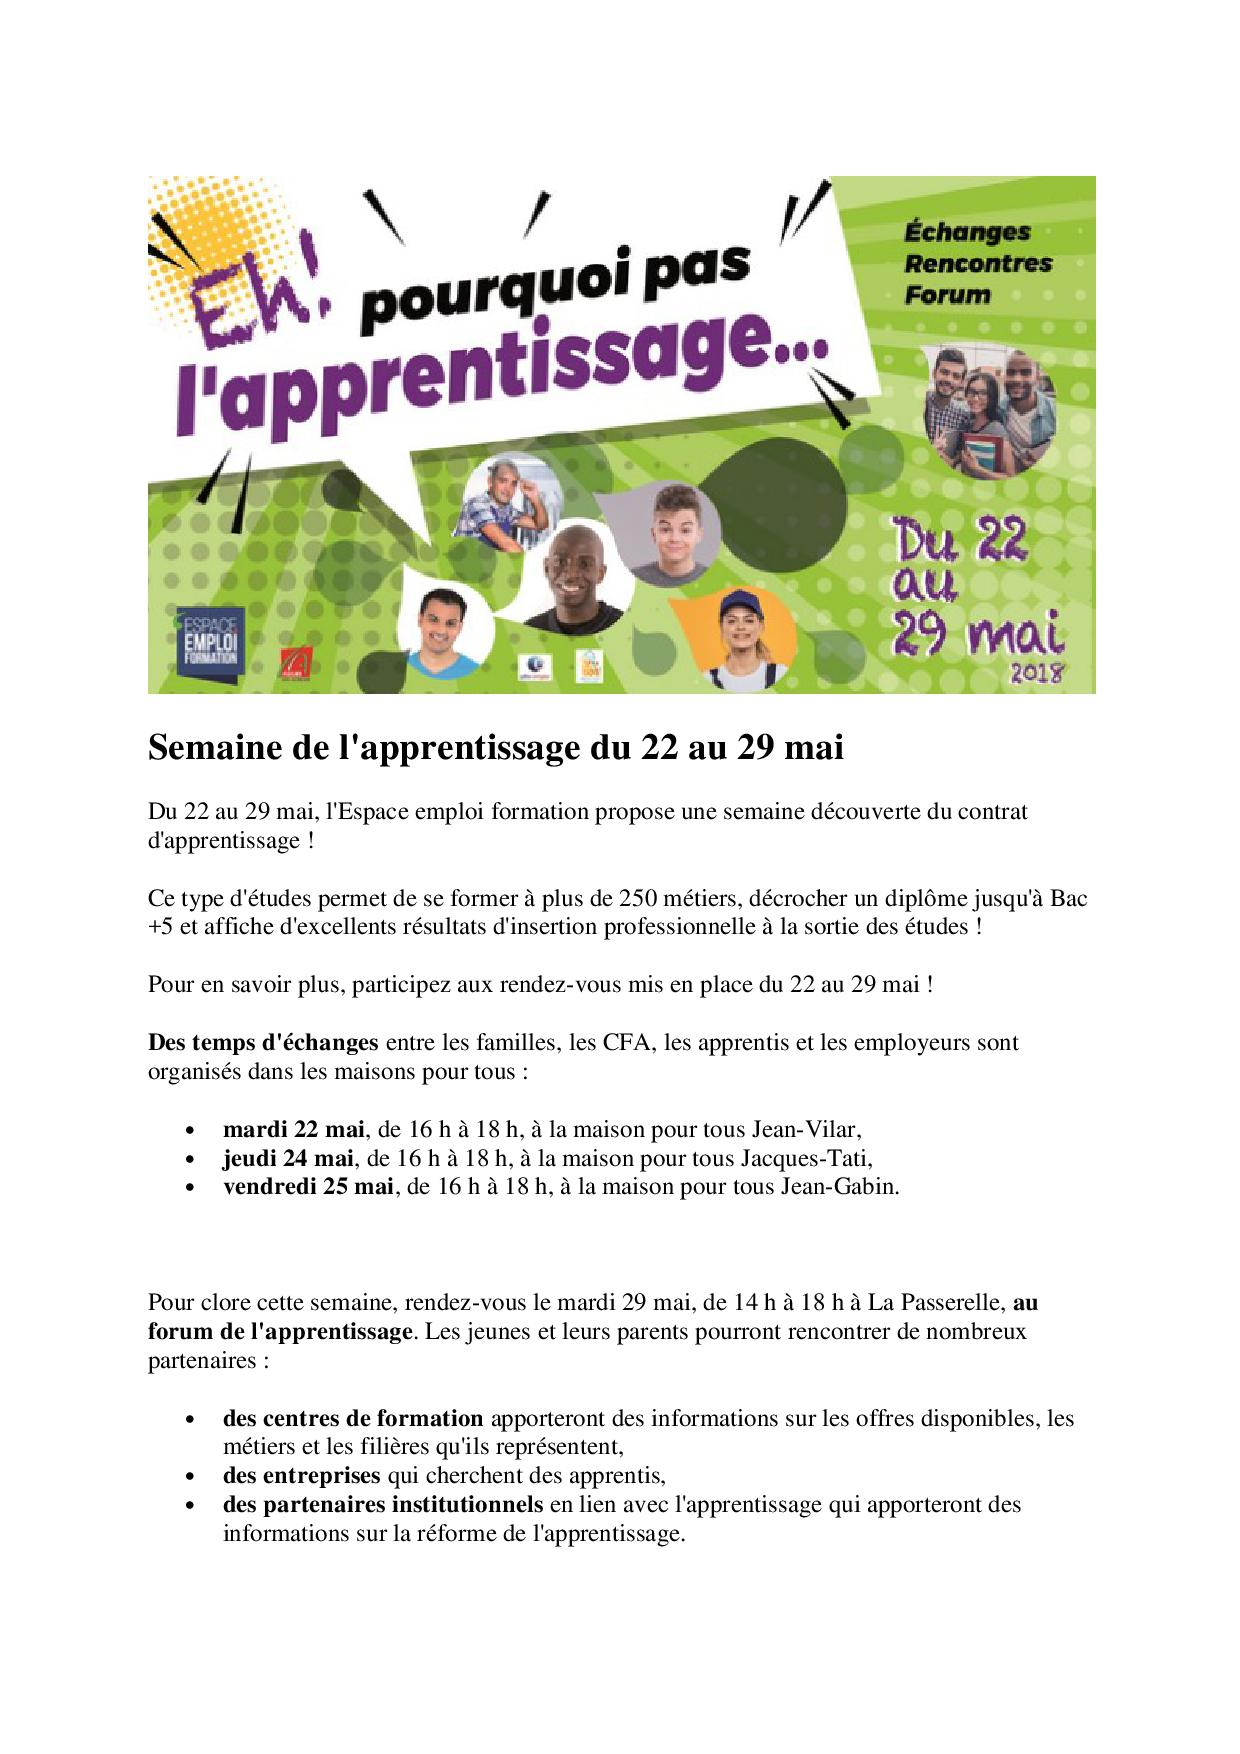 Document1 Semaine de l'apprentissage du 22 au 29 mai 2018.jpg